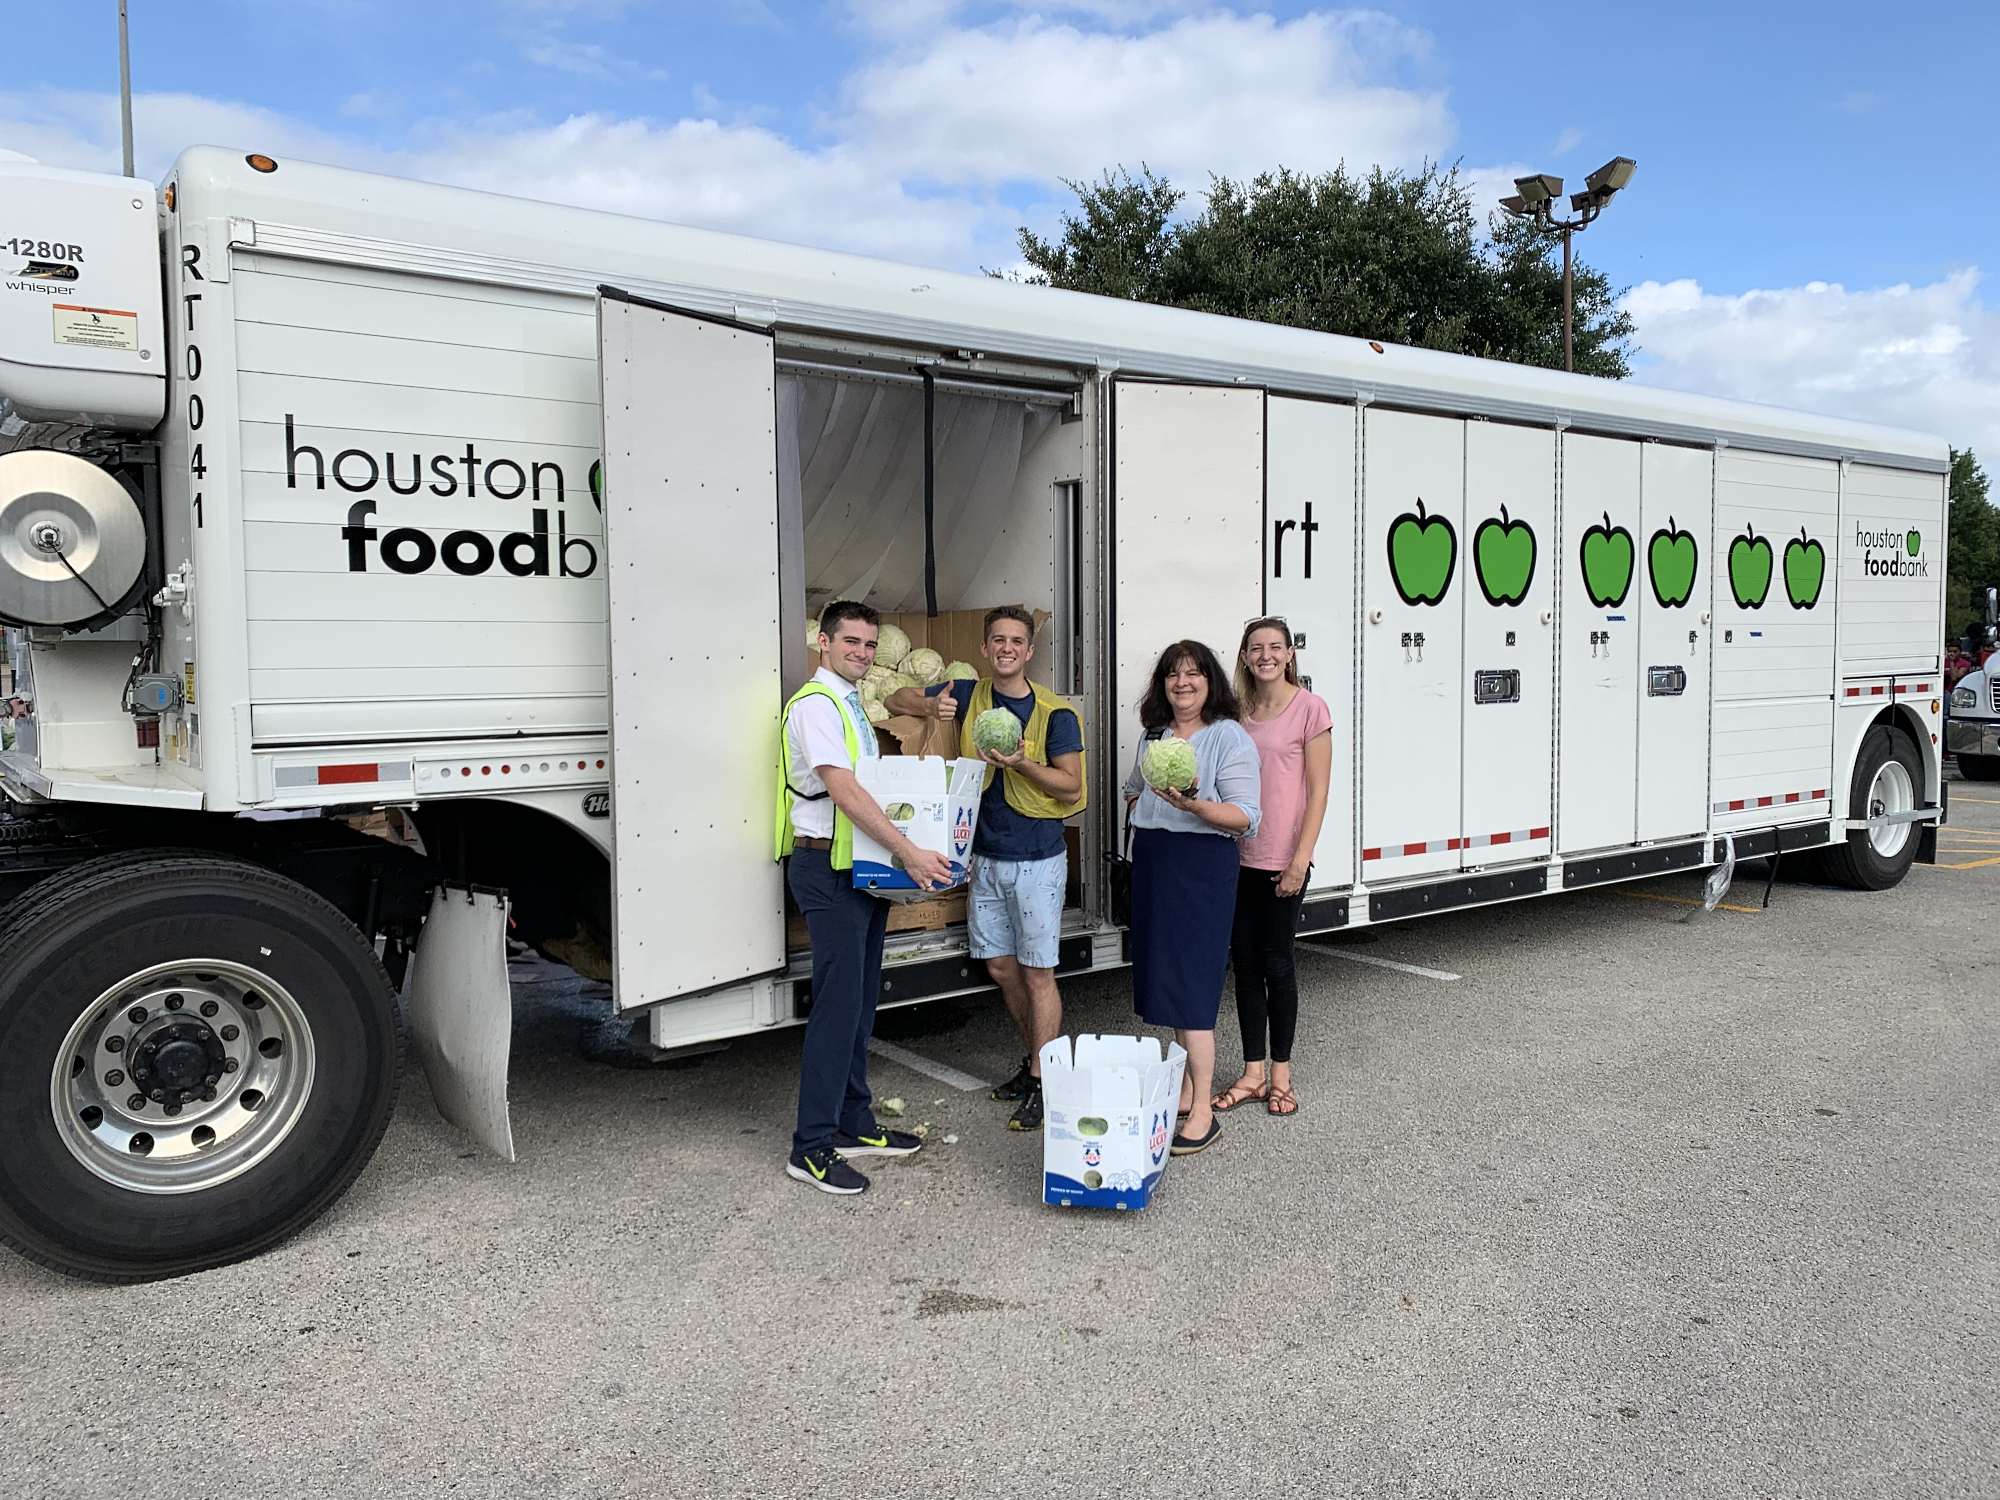 The Houston Foodbank and missionaries prepare for Kashmere Gardens project.